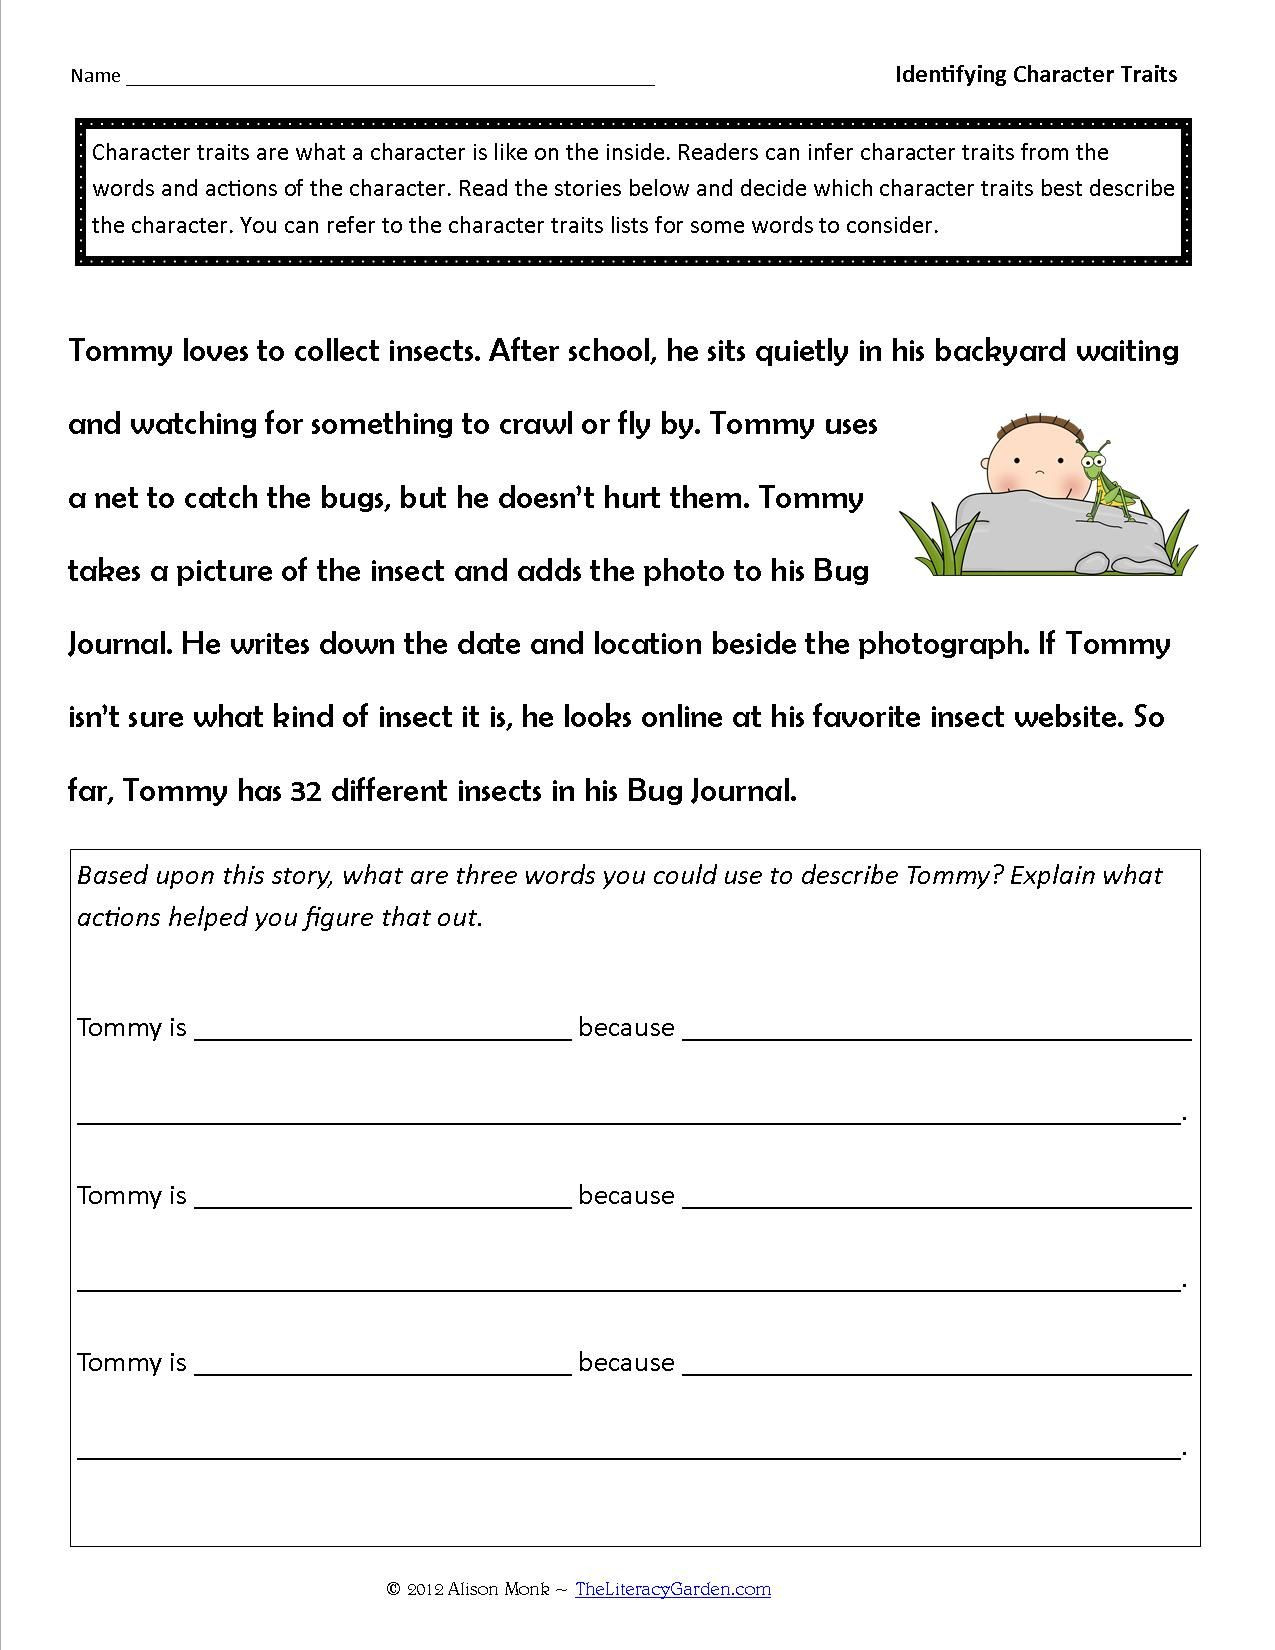 Character Traits Printable Worksheets